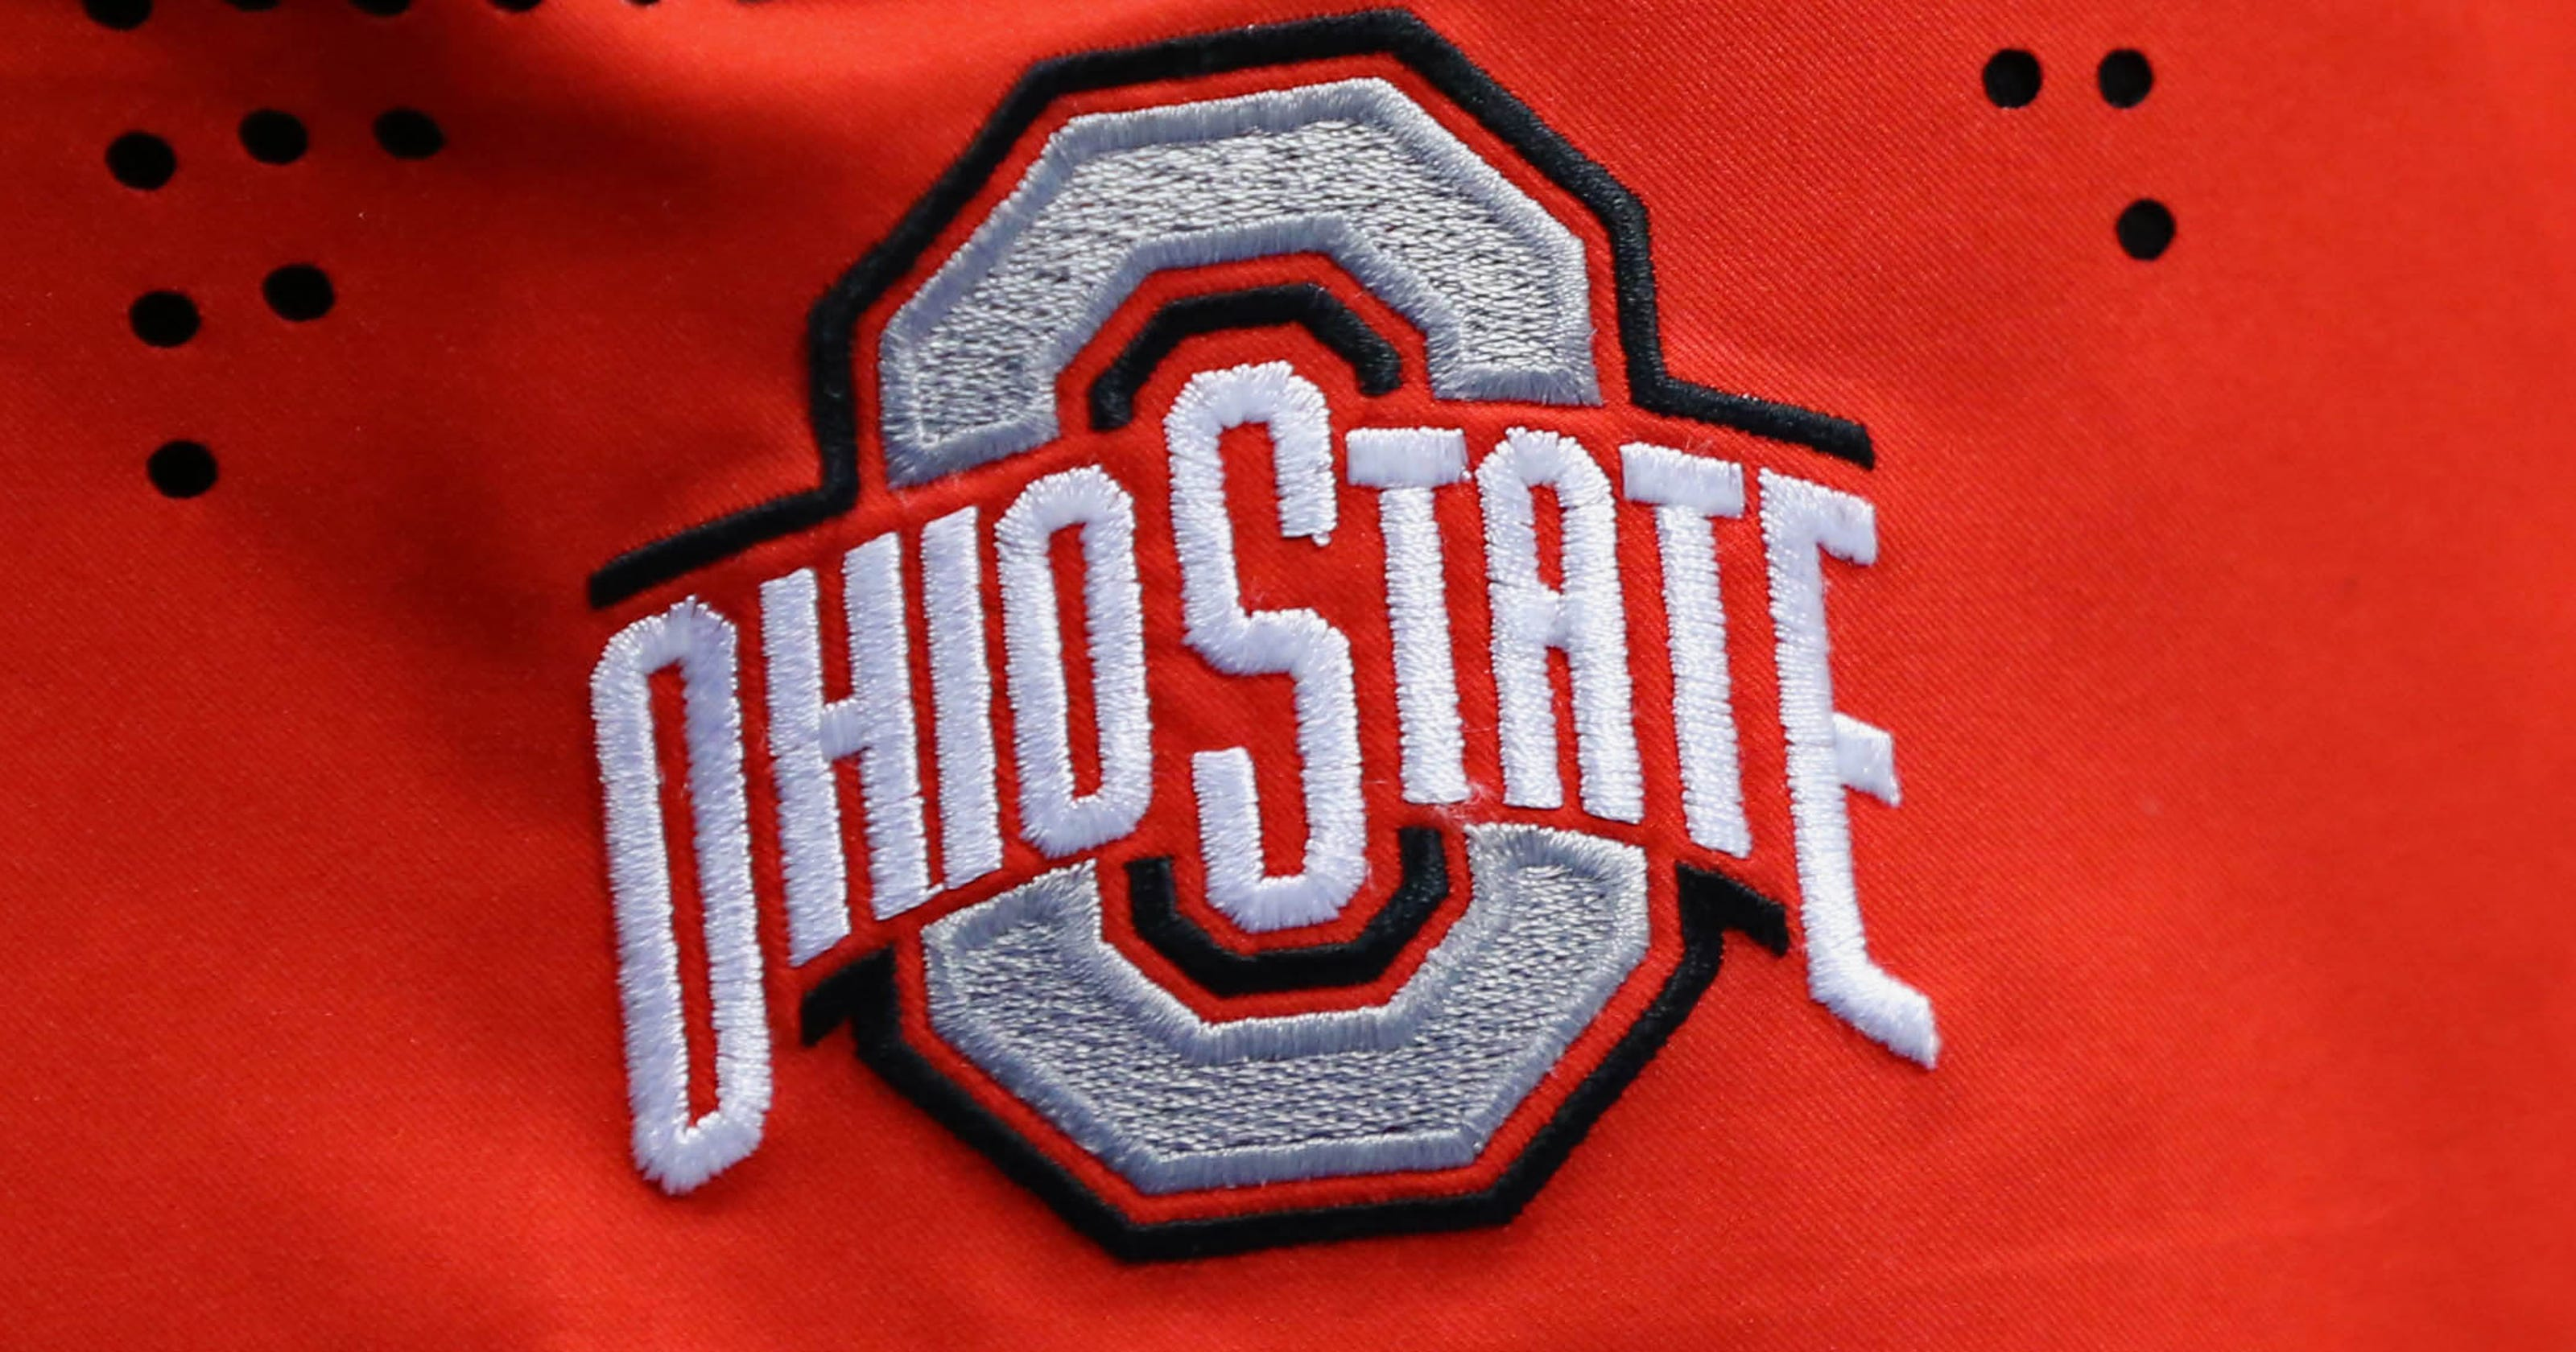 Ohio State: More than 100 allege sexual abuse by former team doctor